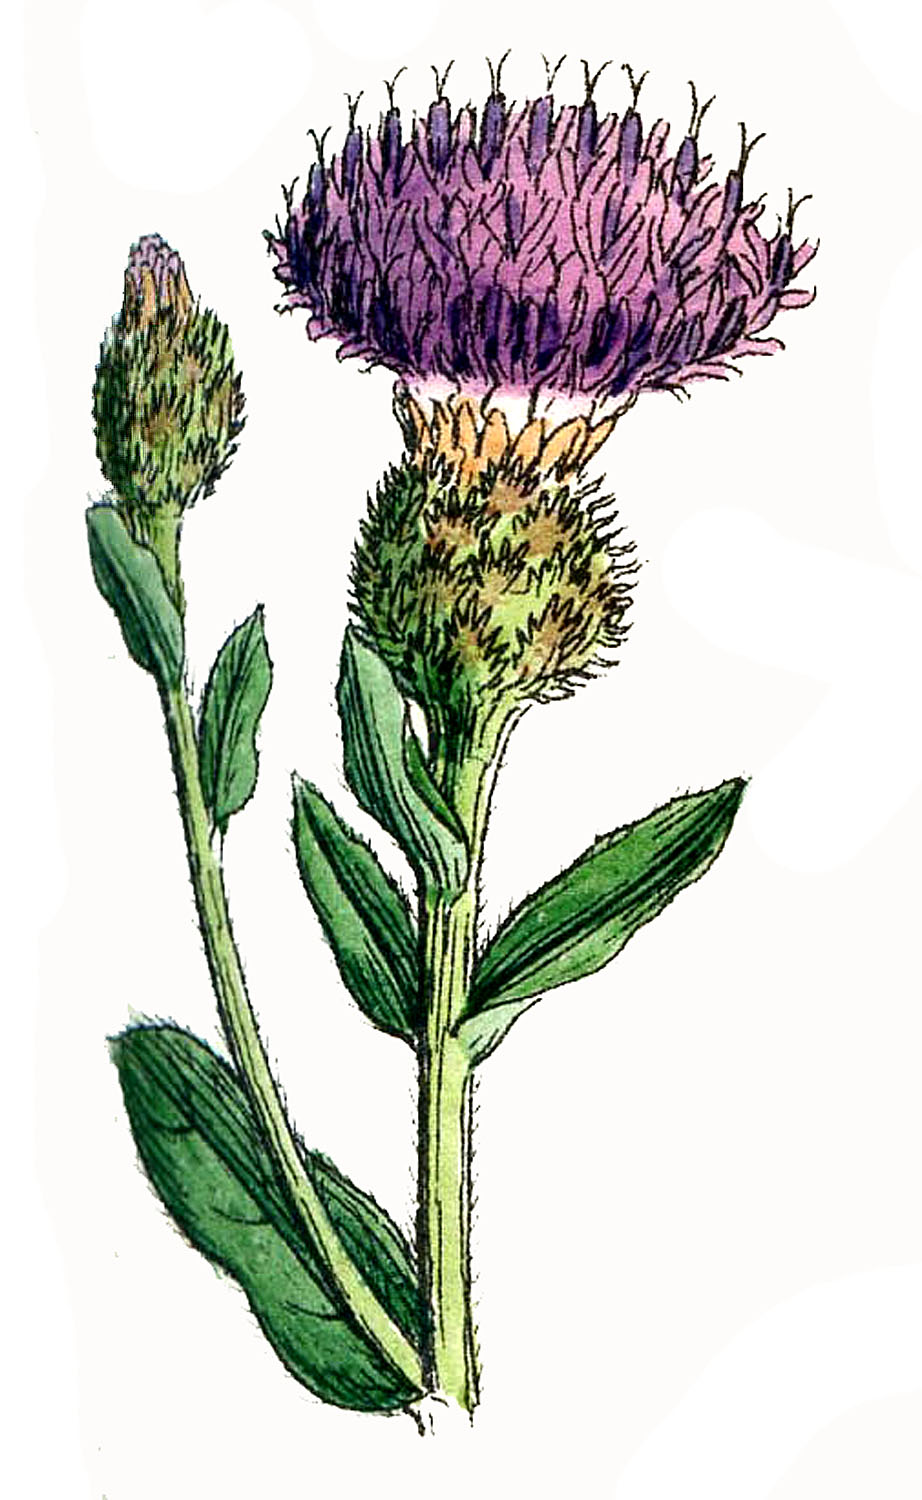 Thistle clipart images picture black and white download Free Thistle Cliparts, Download Free Clip Art, Free Clip Art ... picture black and white download